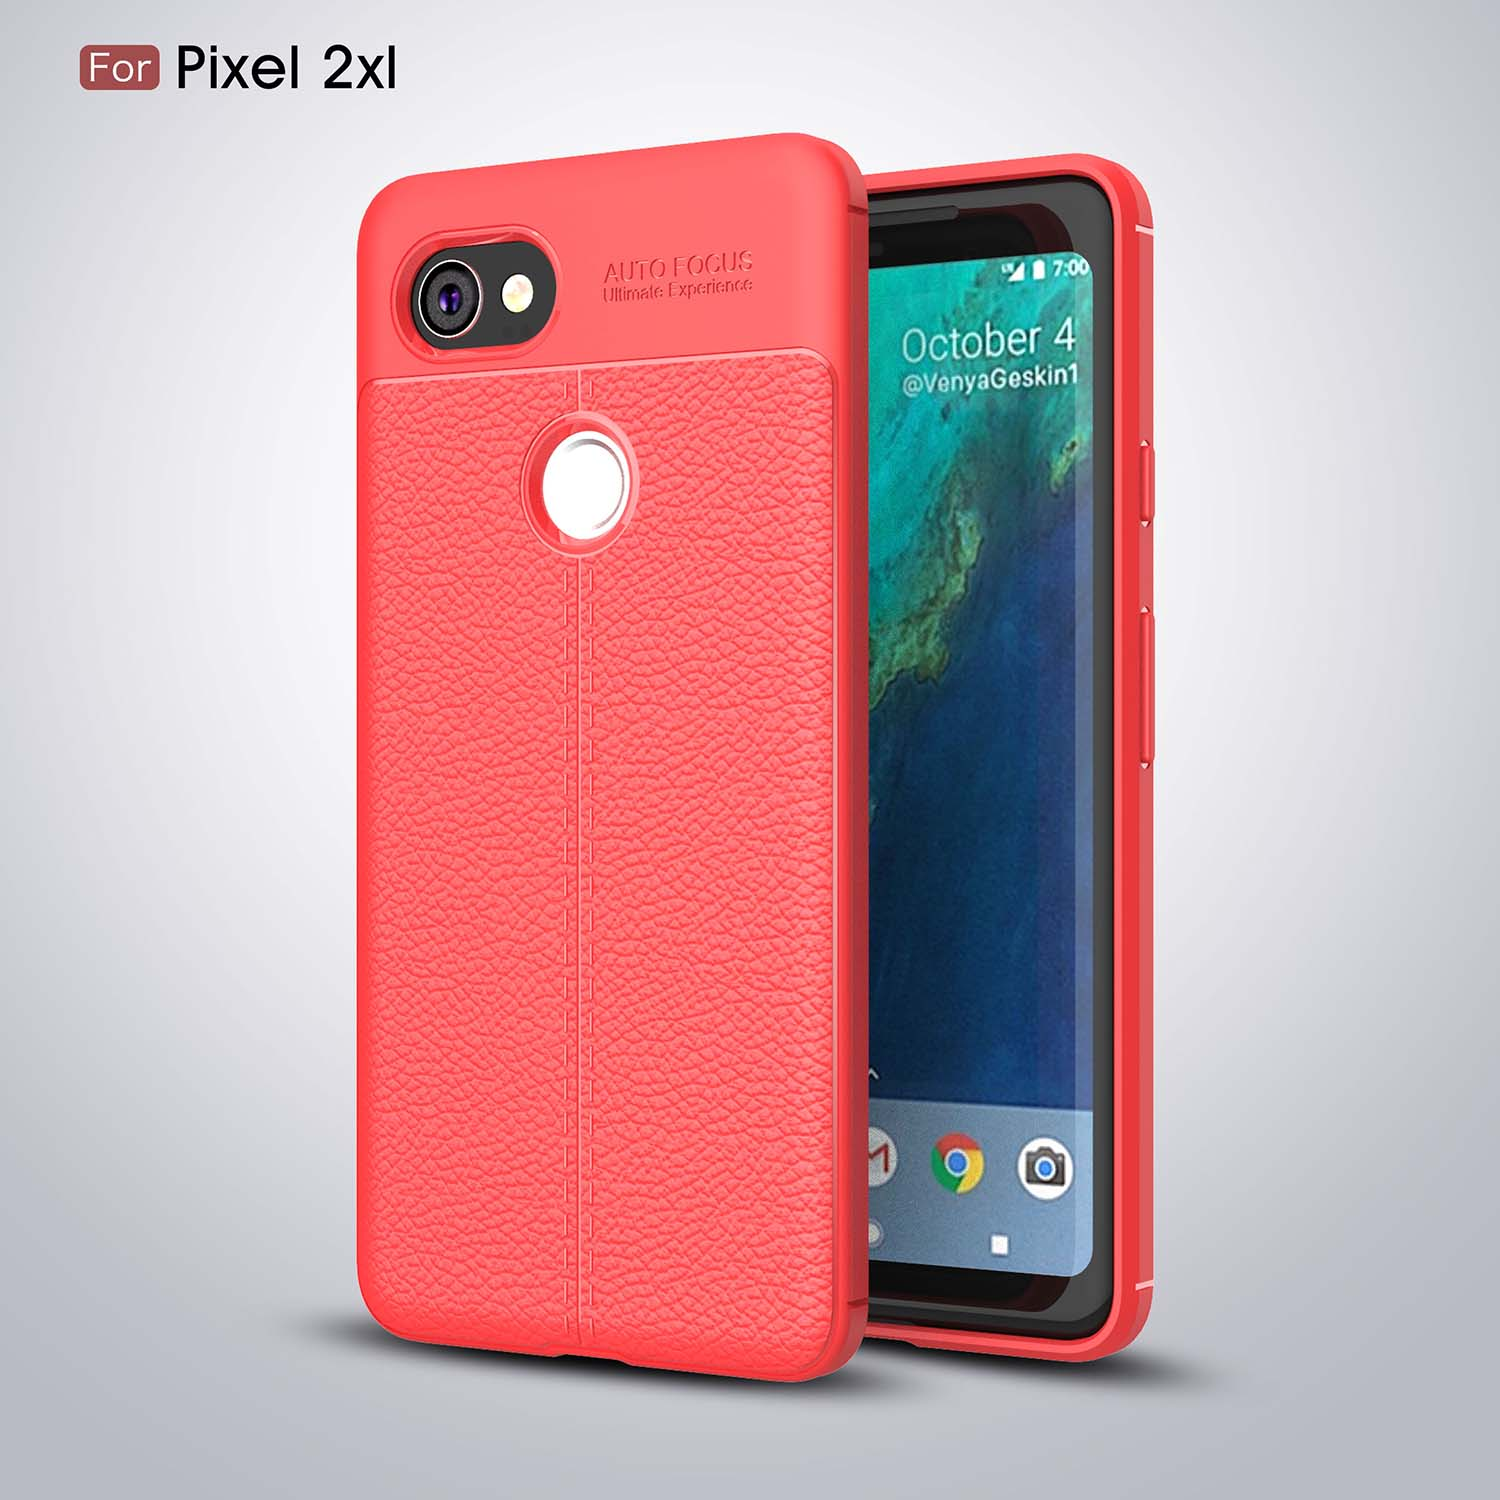 Cover Google Pixel 2 XL Case Rubber Silicone Shell Soft Phone Case Cover For Google Pixel2 XL Case For Google Pixel 2 XL